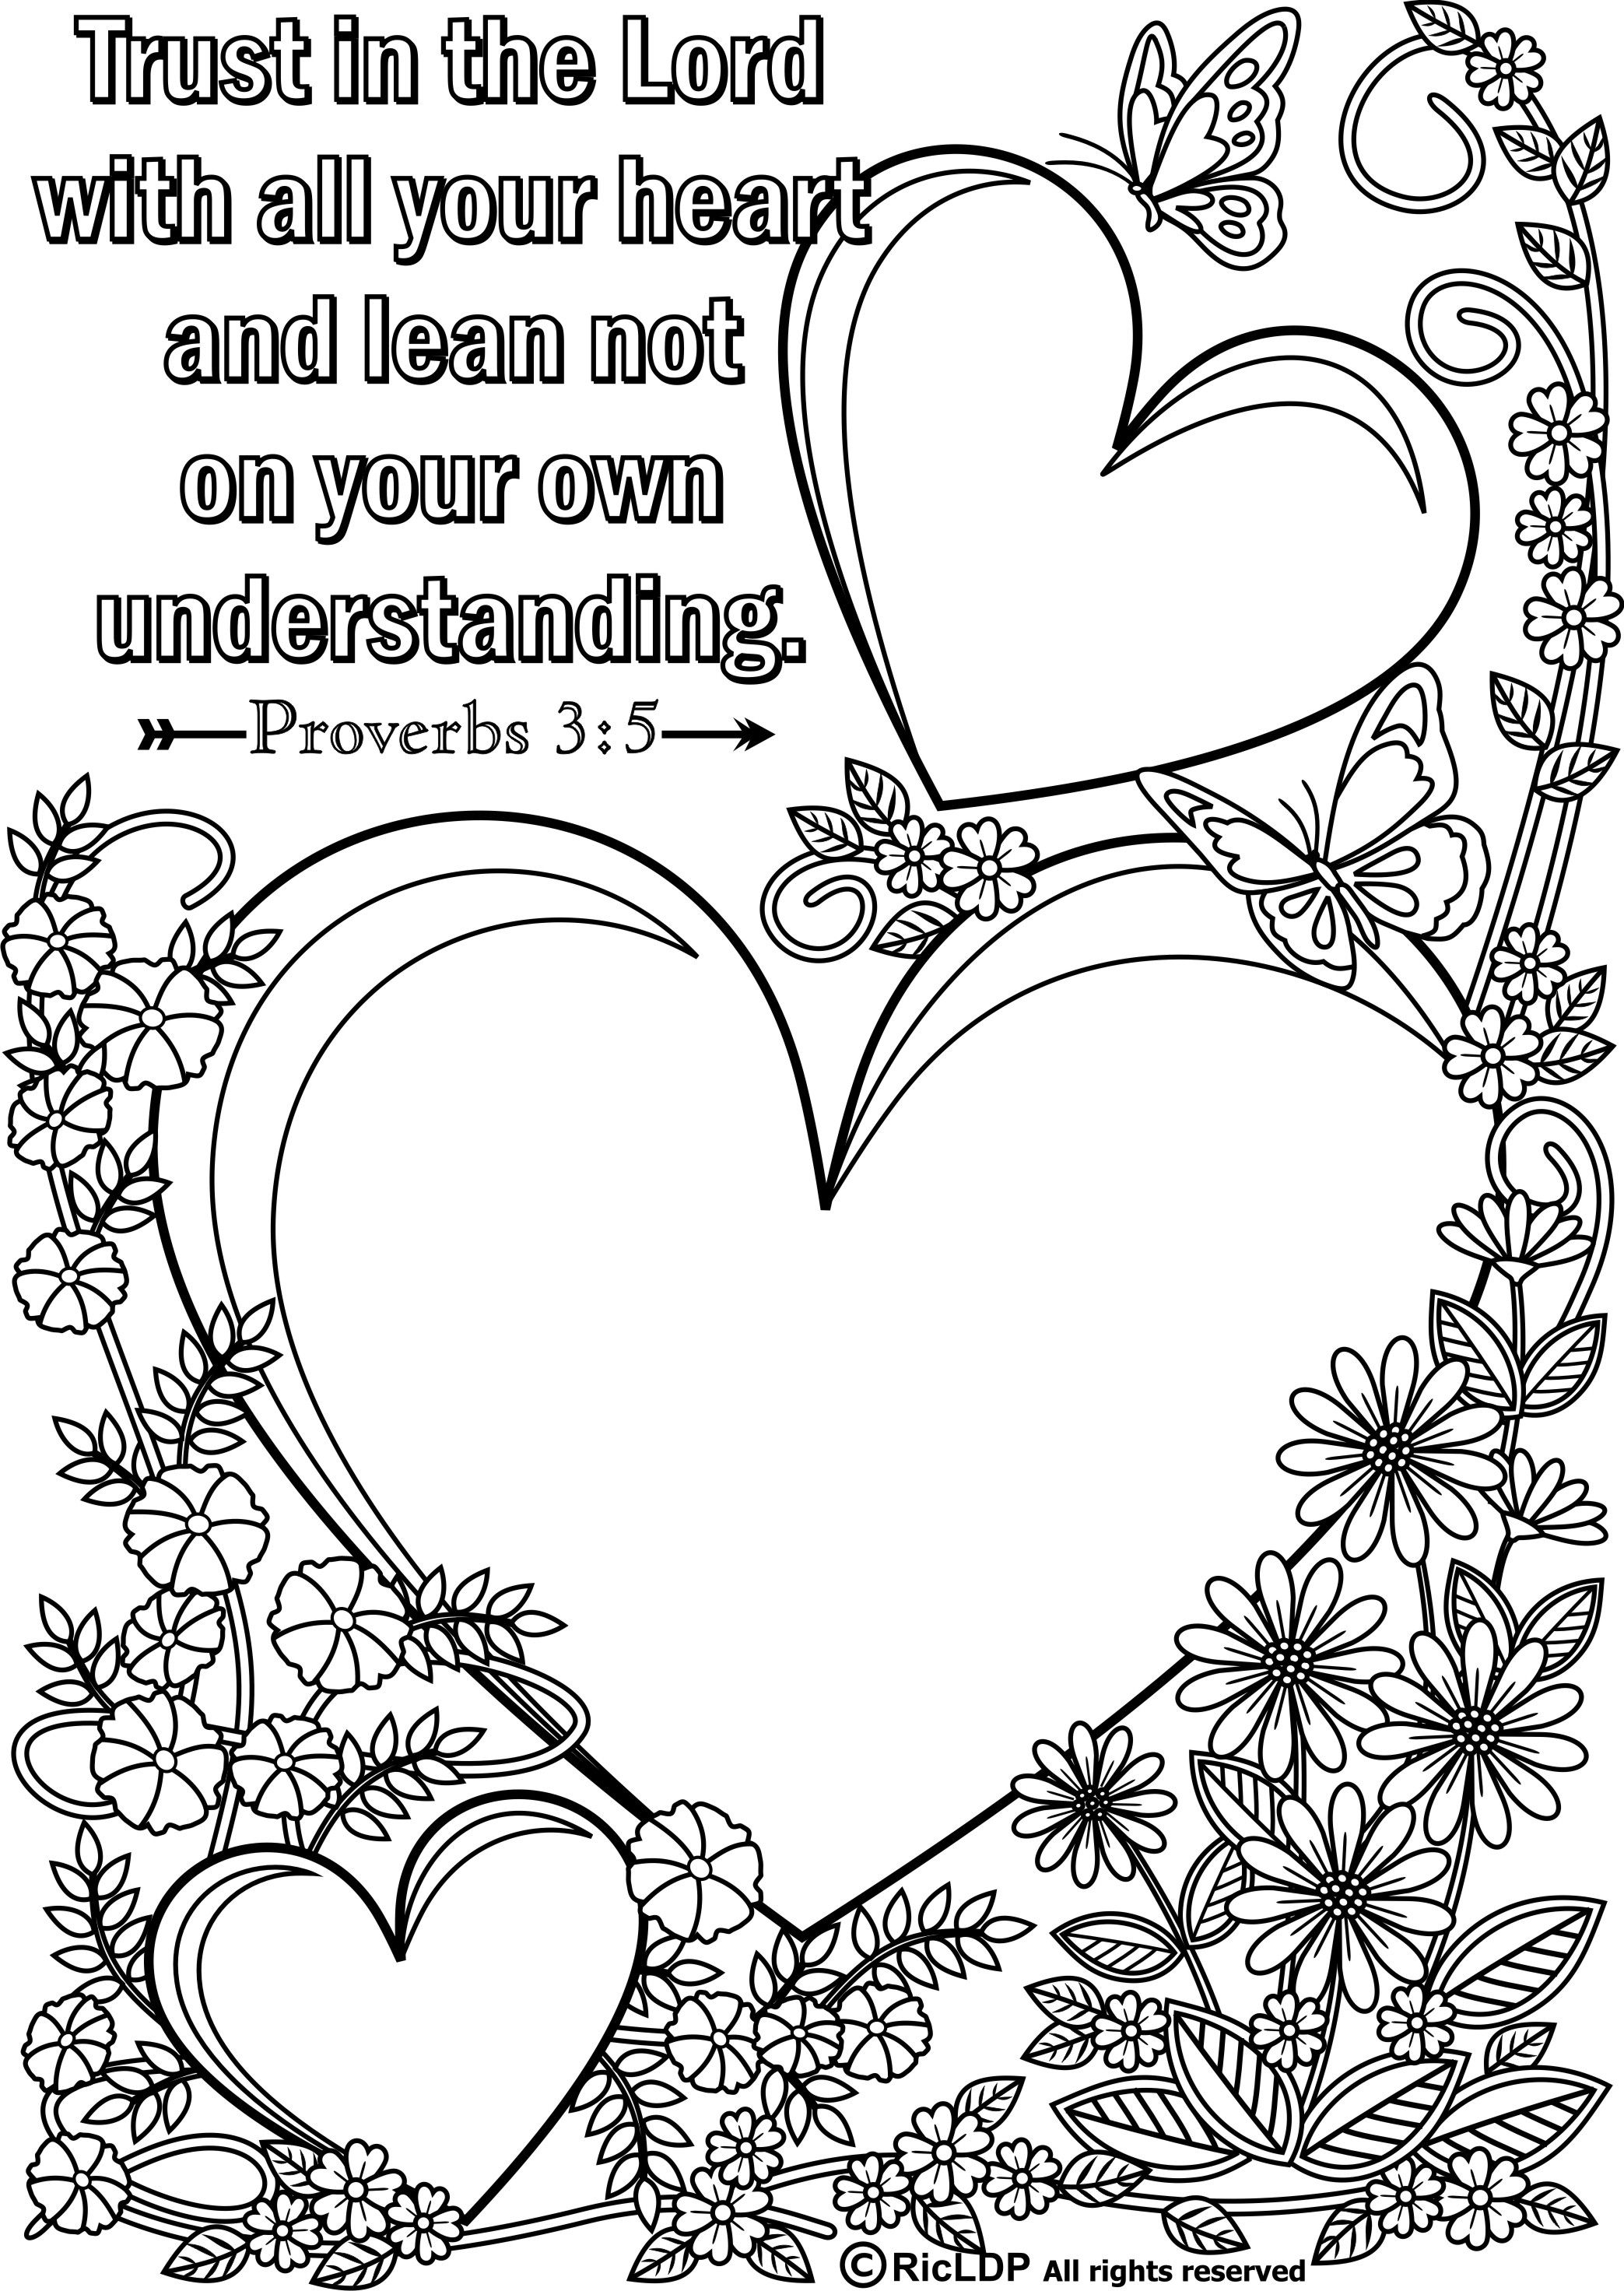 Children Church Printable Do Small Things With Great Love Flower Design Coloring Page For